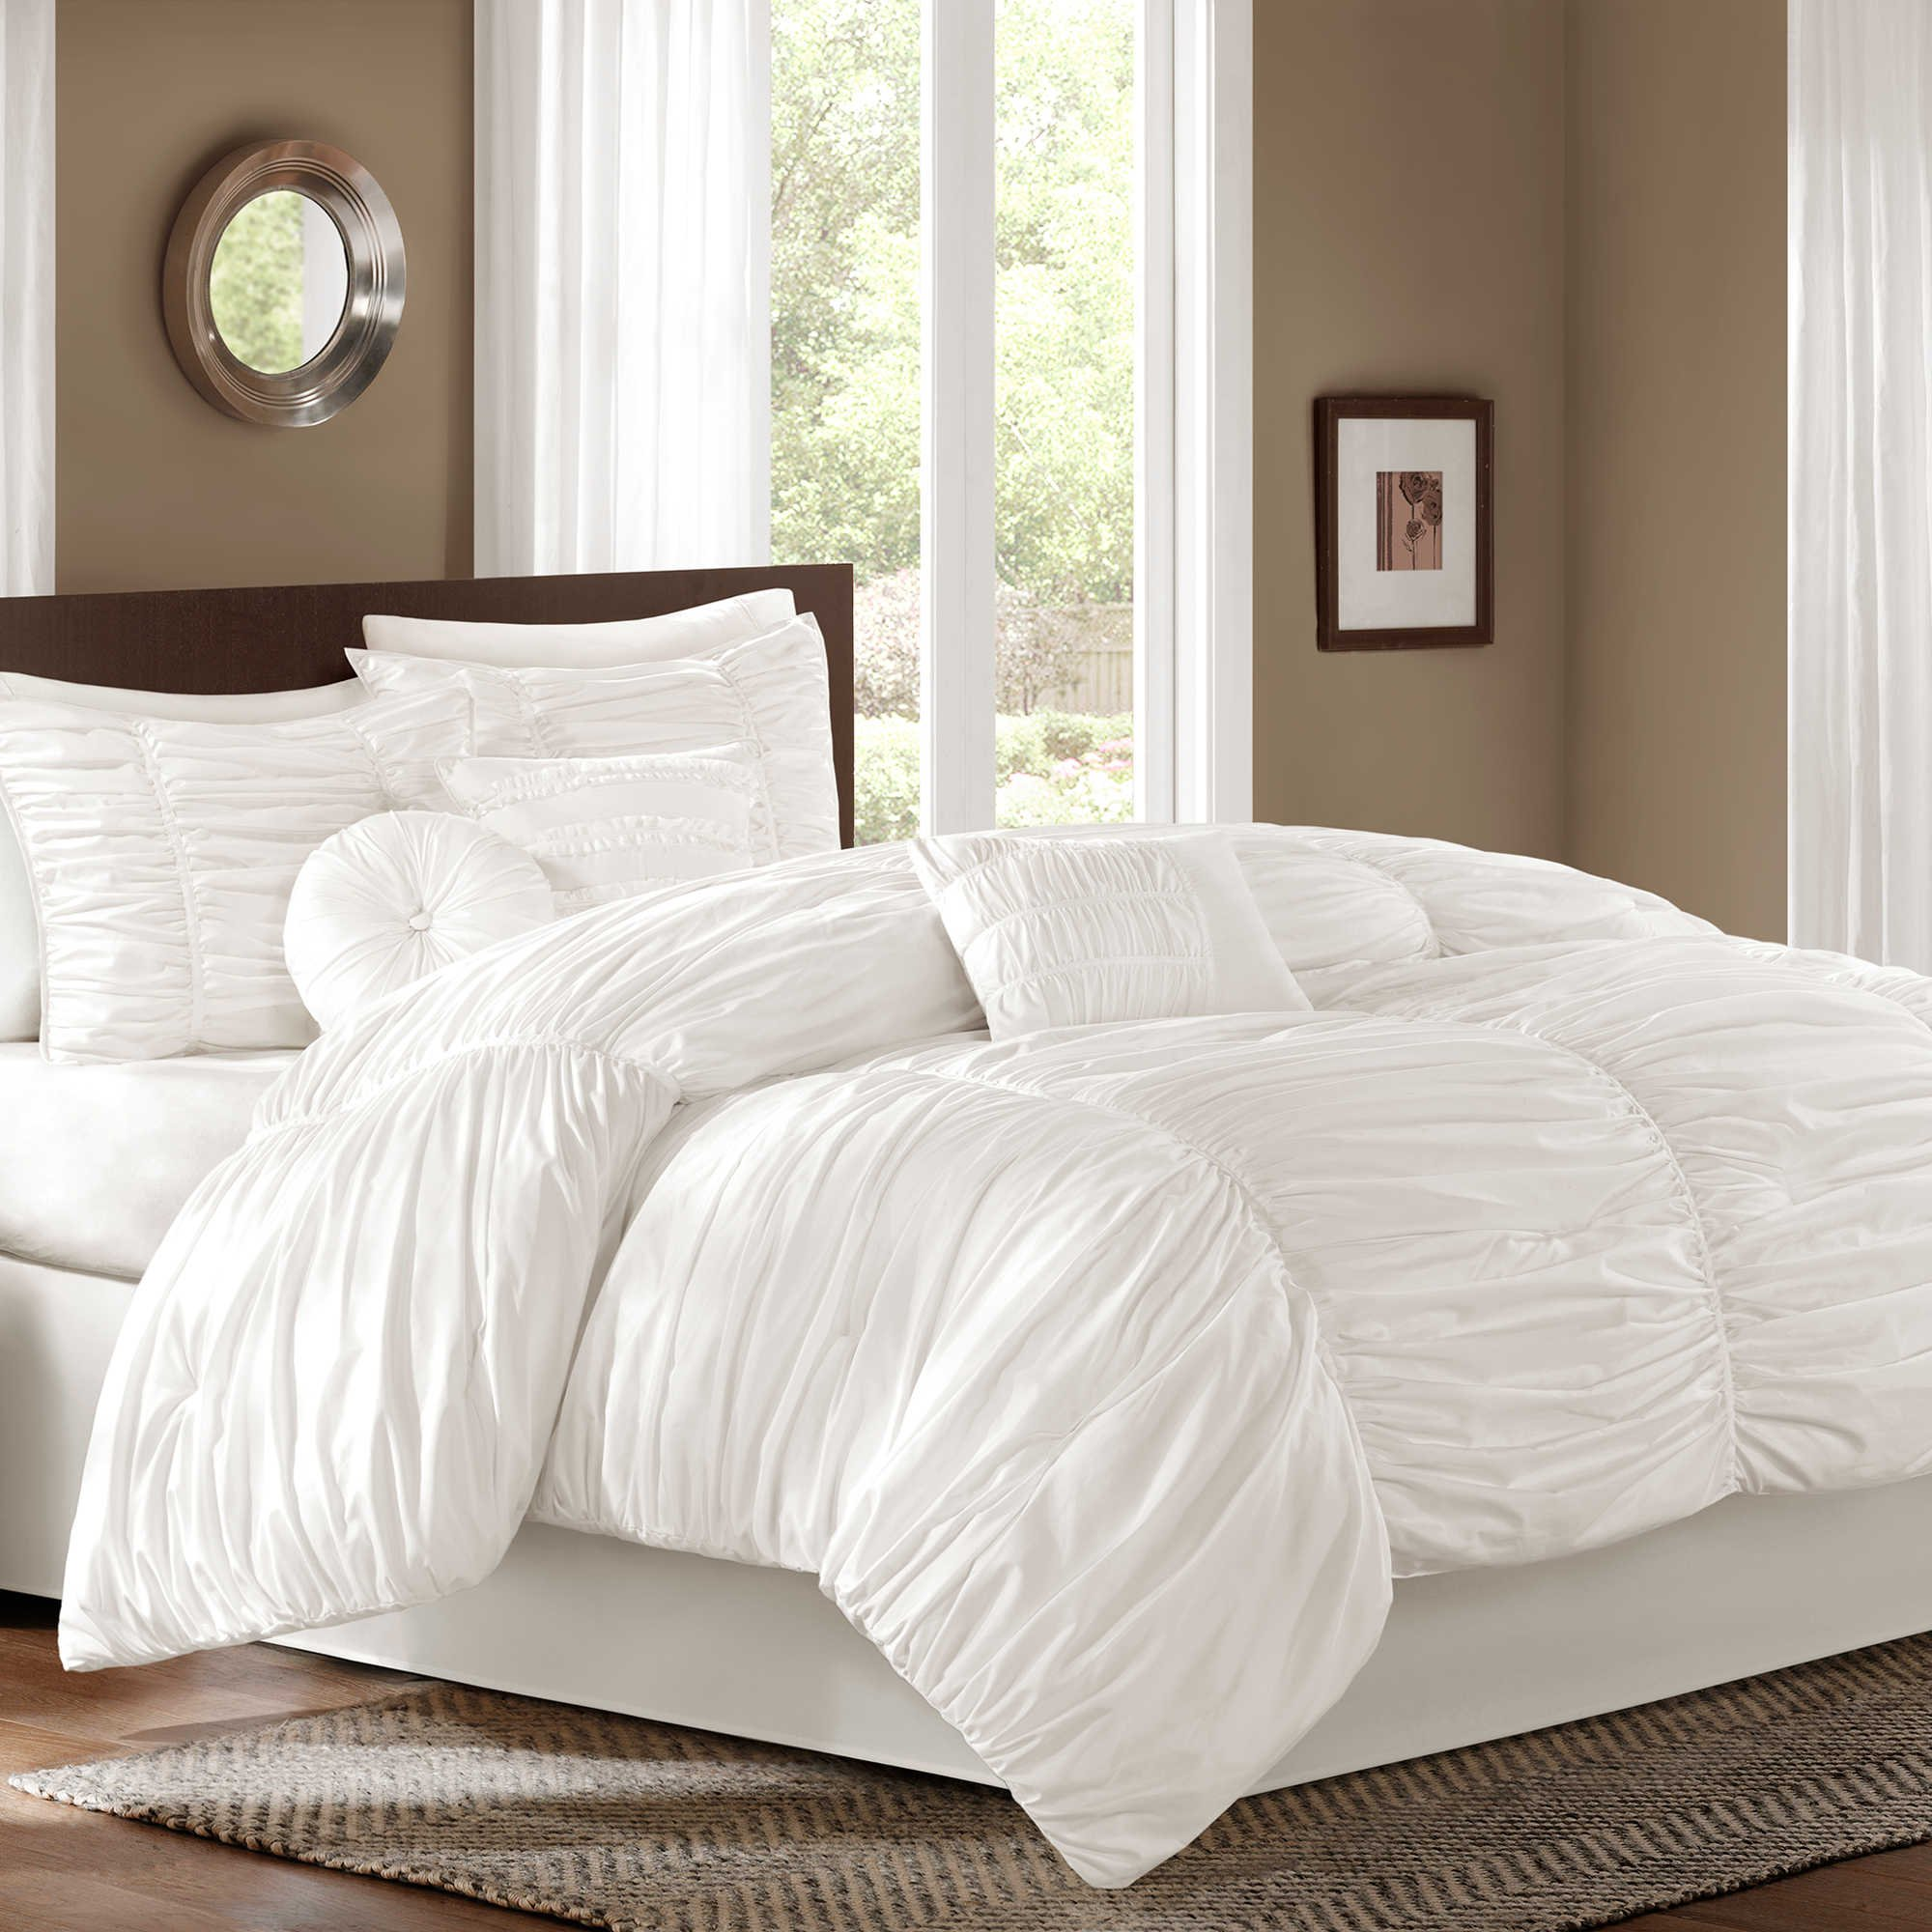 7 Piece Sidney Comforter Set in White (King)